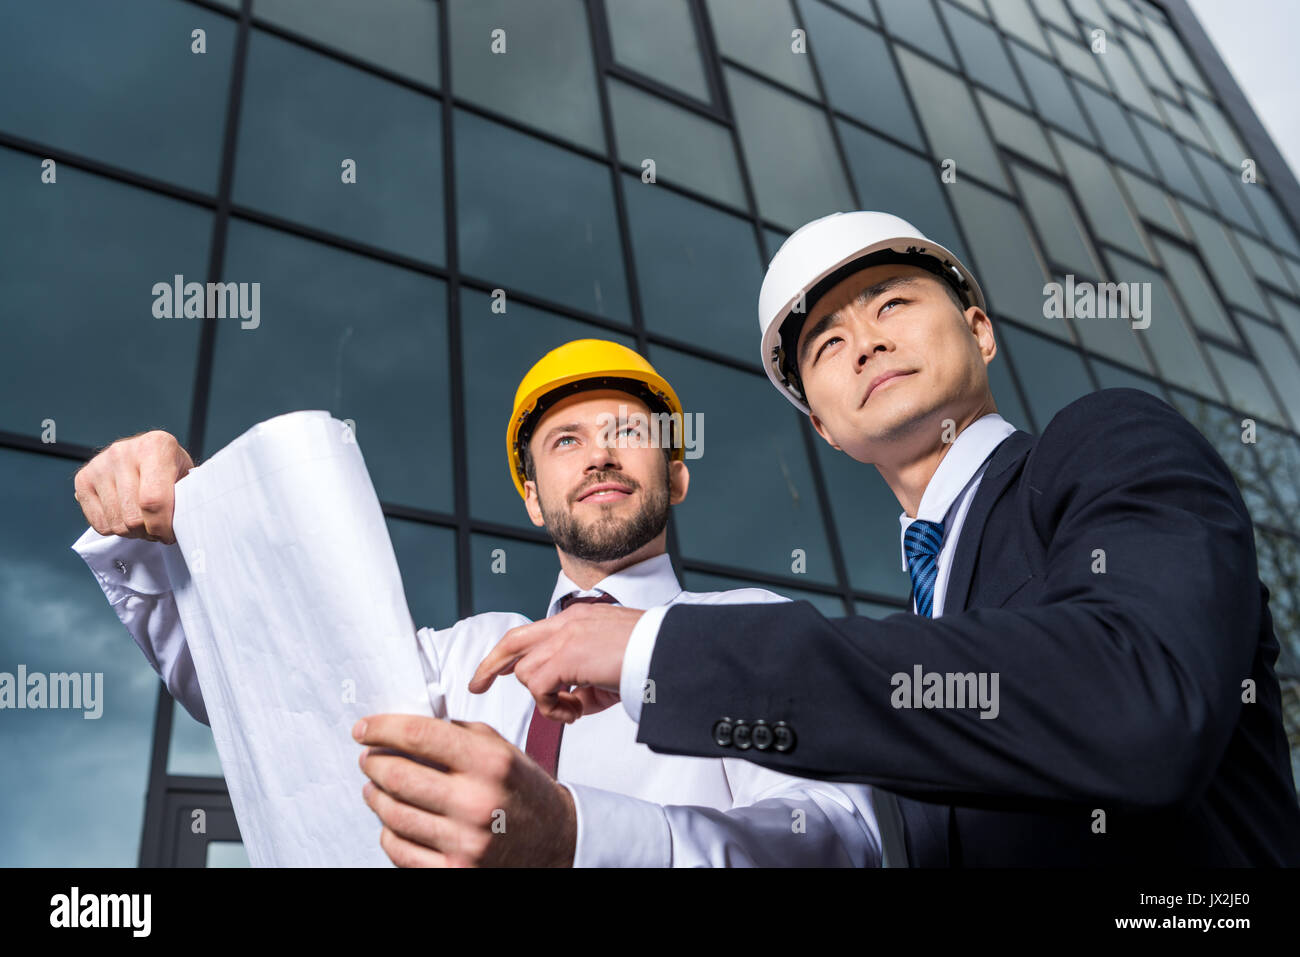 low angle view of professional architects in hard hats discussing project, successful businessmen concept  - Stock Image